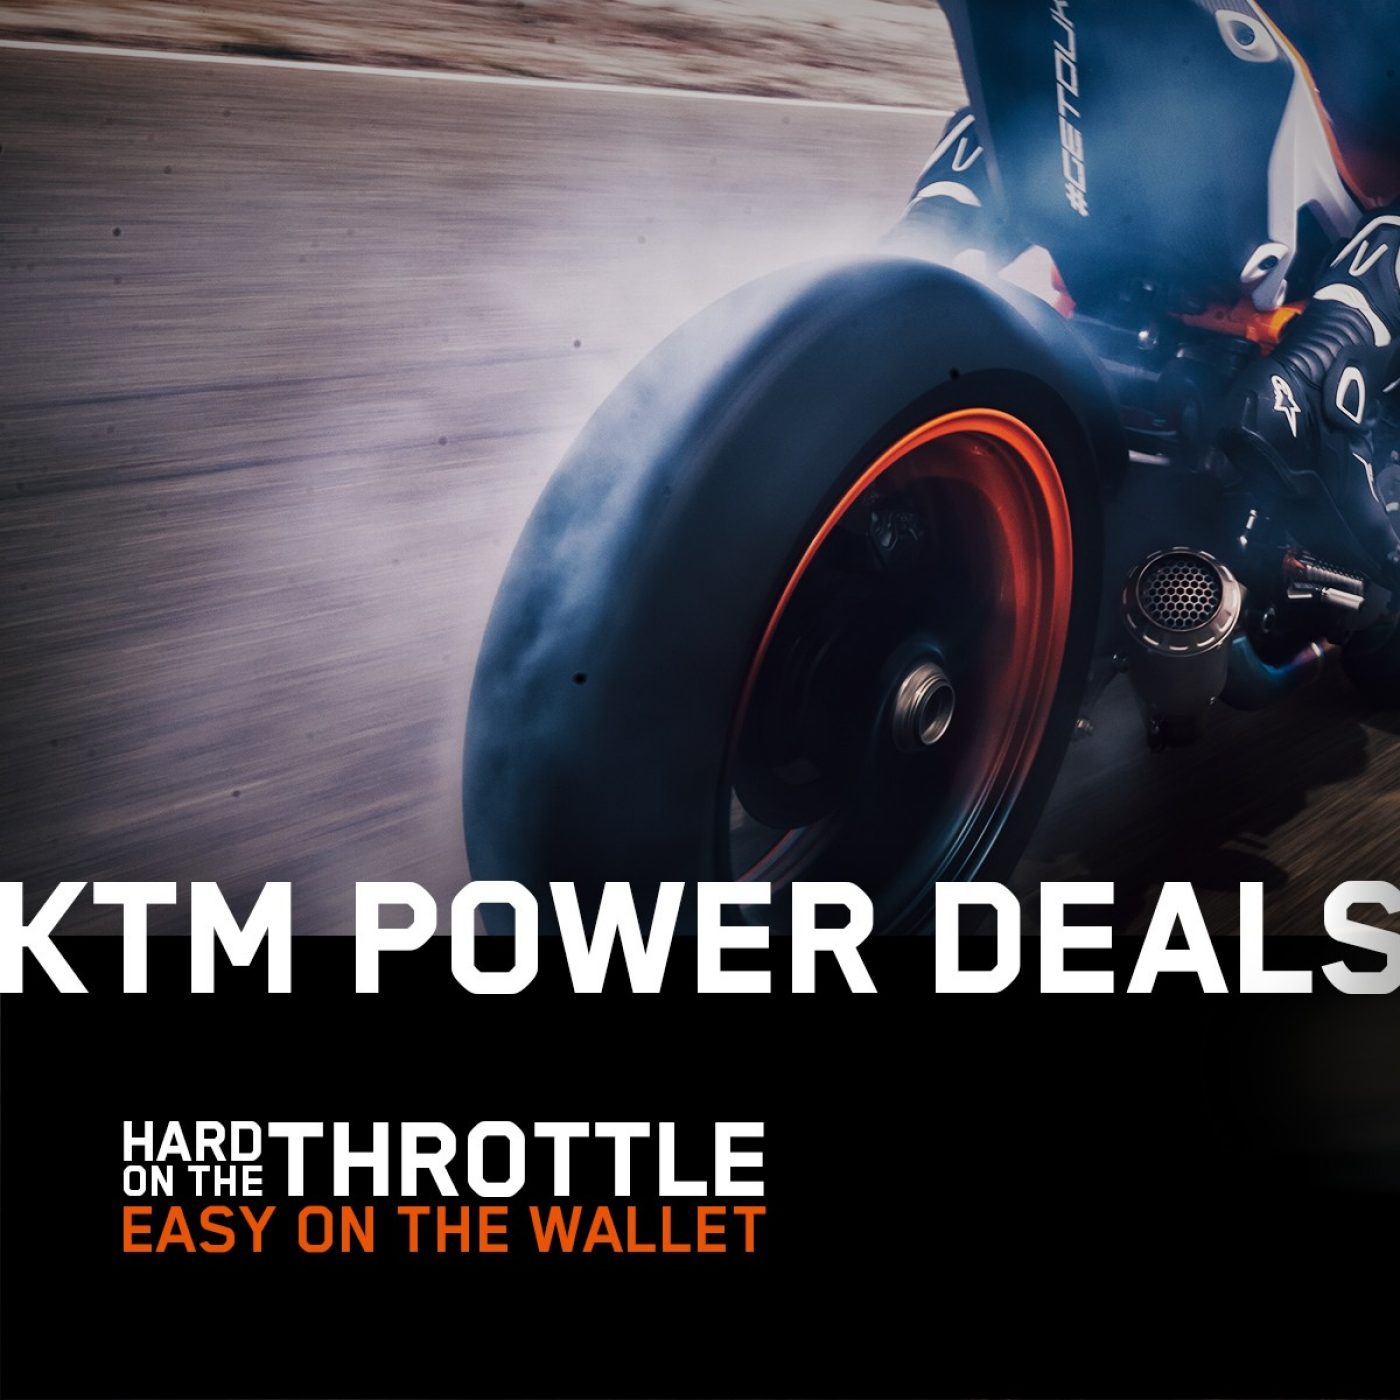 KTM POWER DEALS